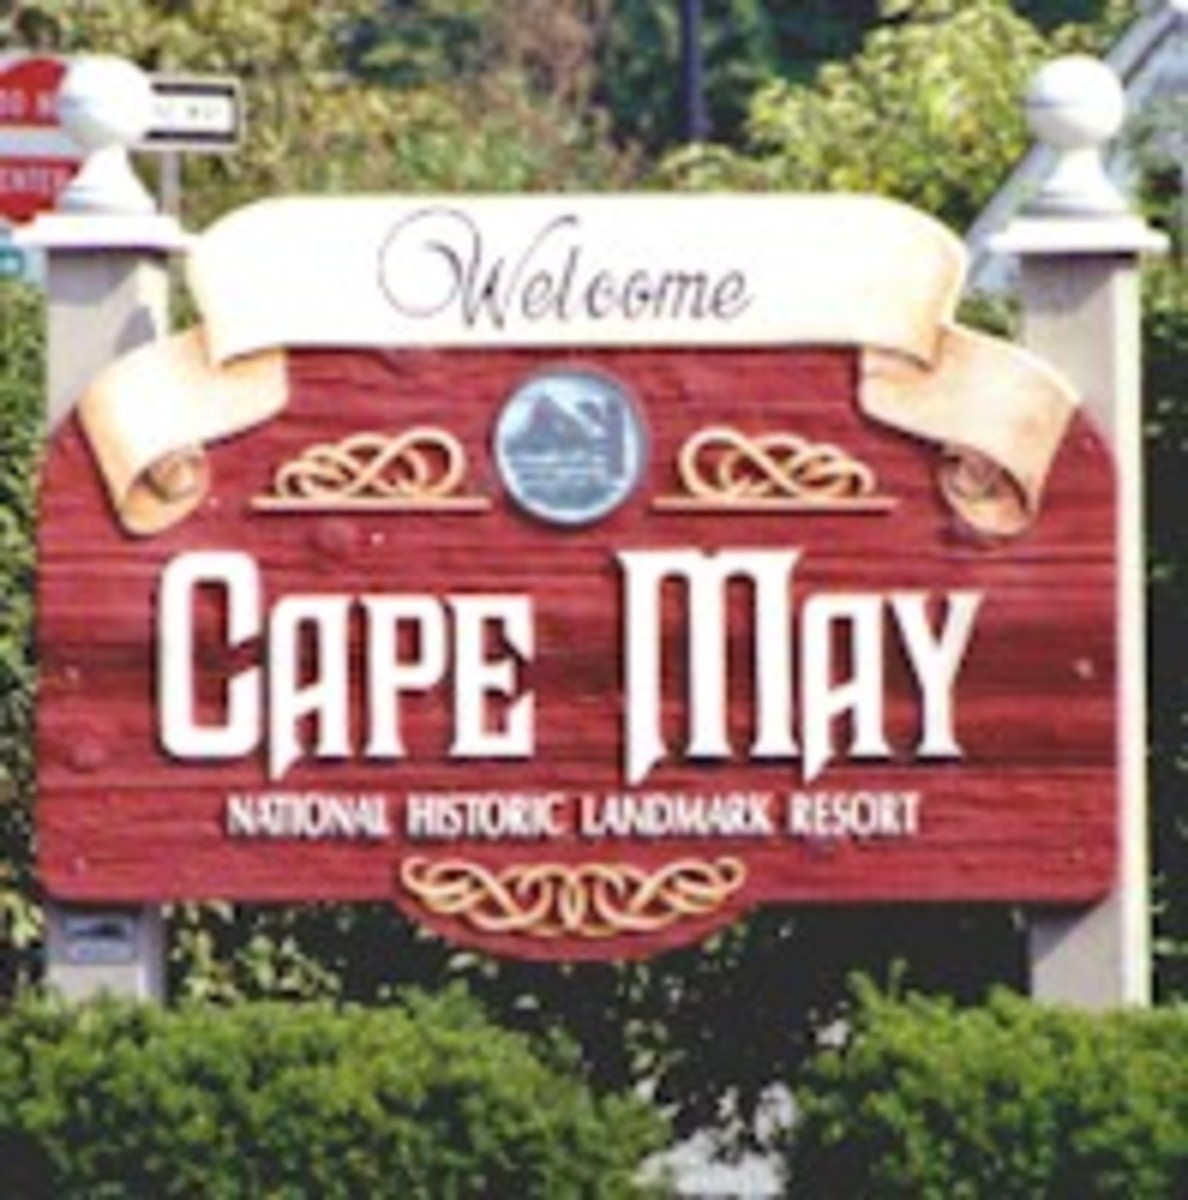 Haunted Cape May, New Jersey; Ghosts, Buried Treasure, Hell Hounds & More